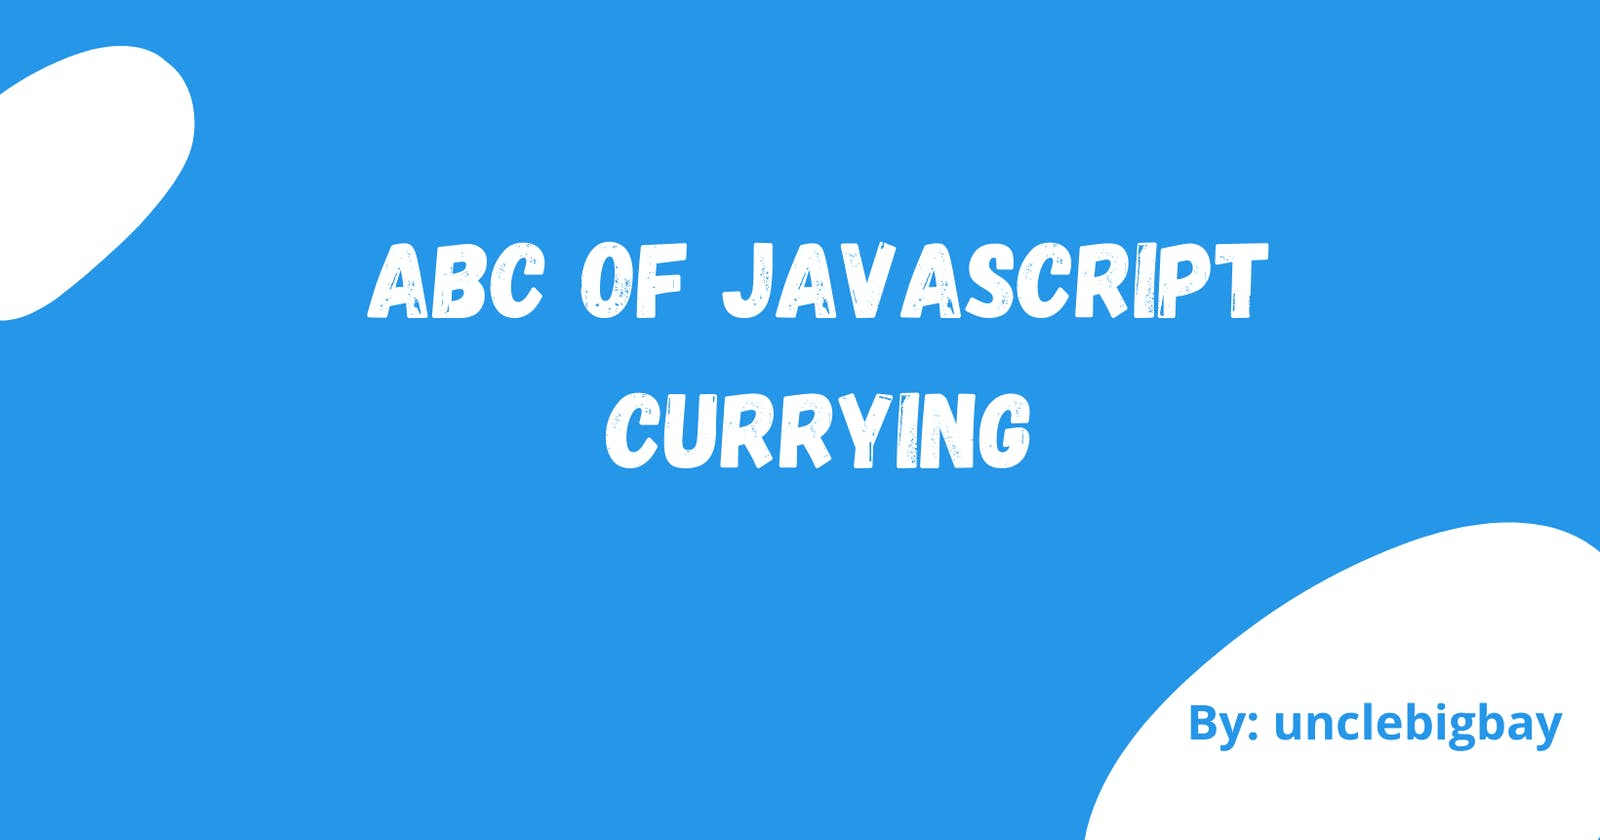 A B C of JavaScript Currying